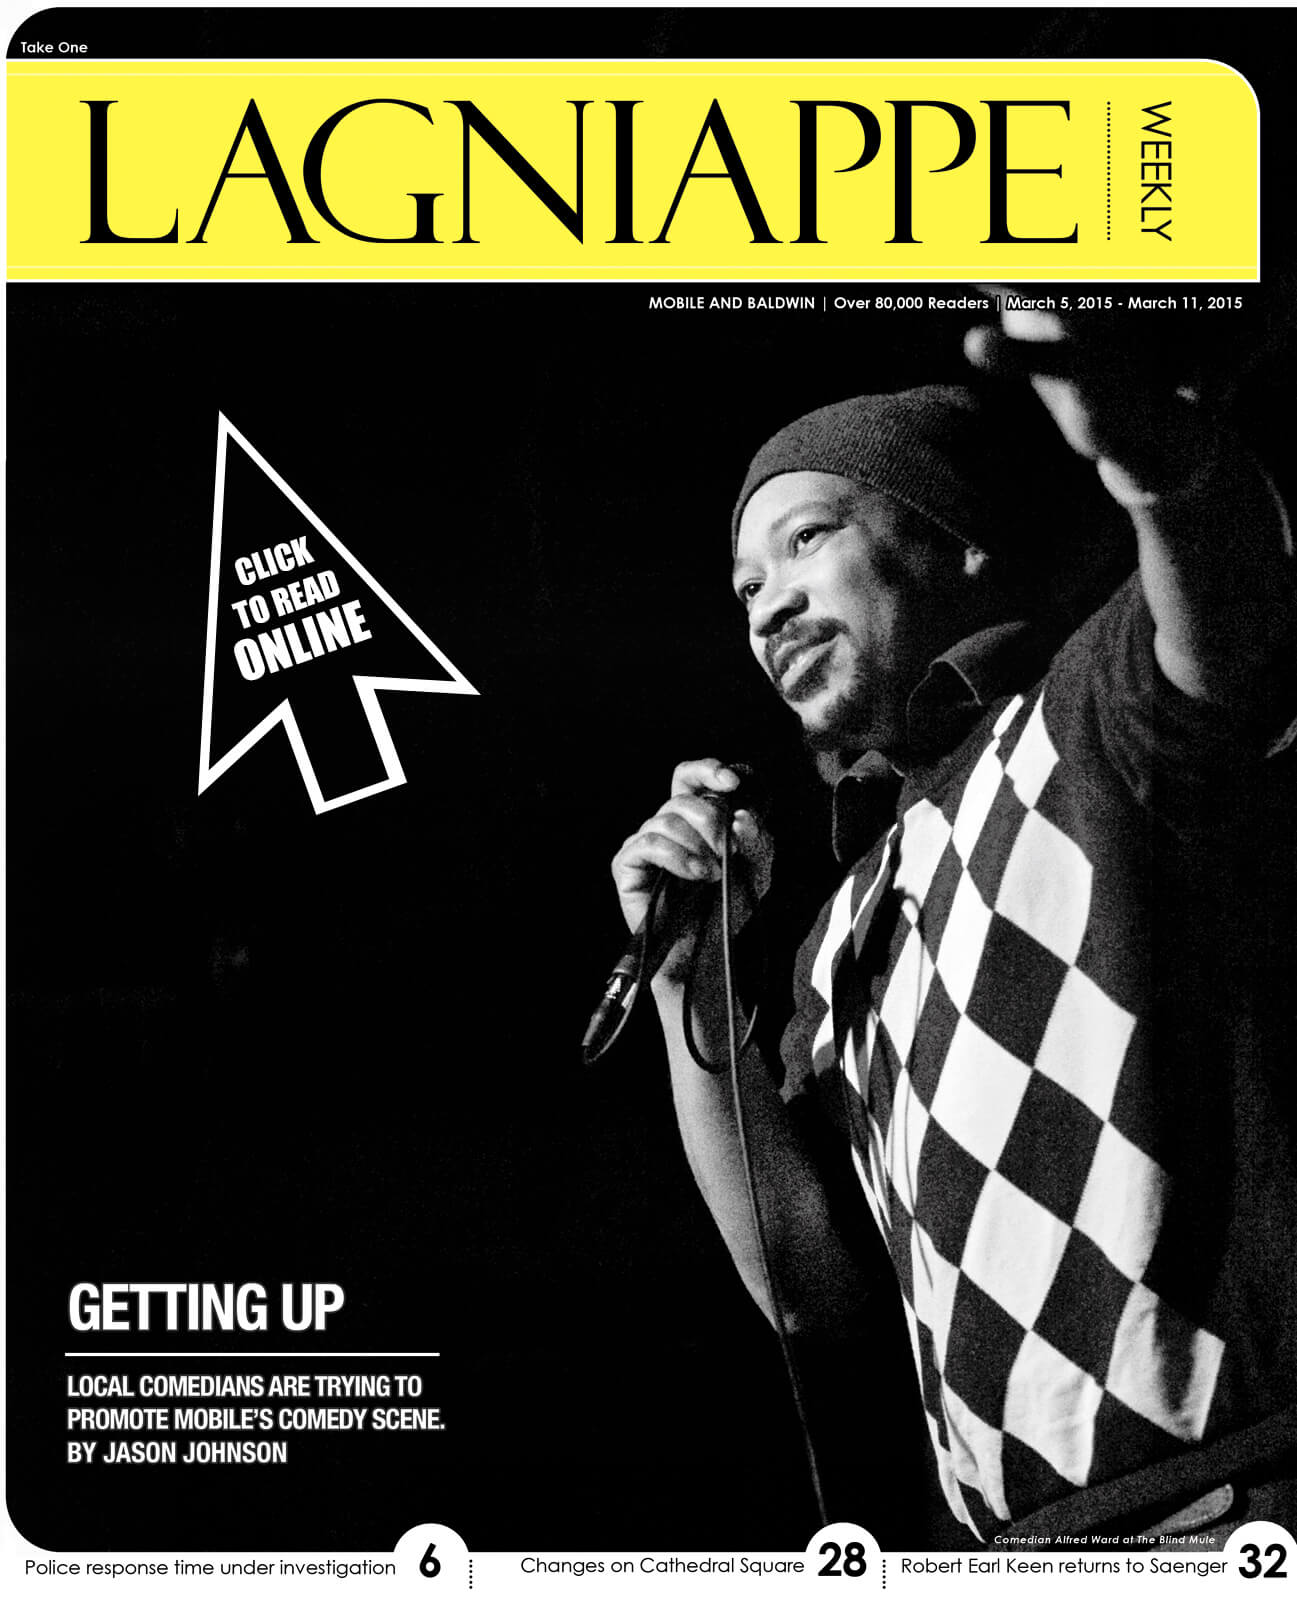 Lagniappe March 5-11, 2015